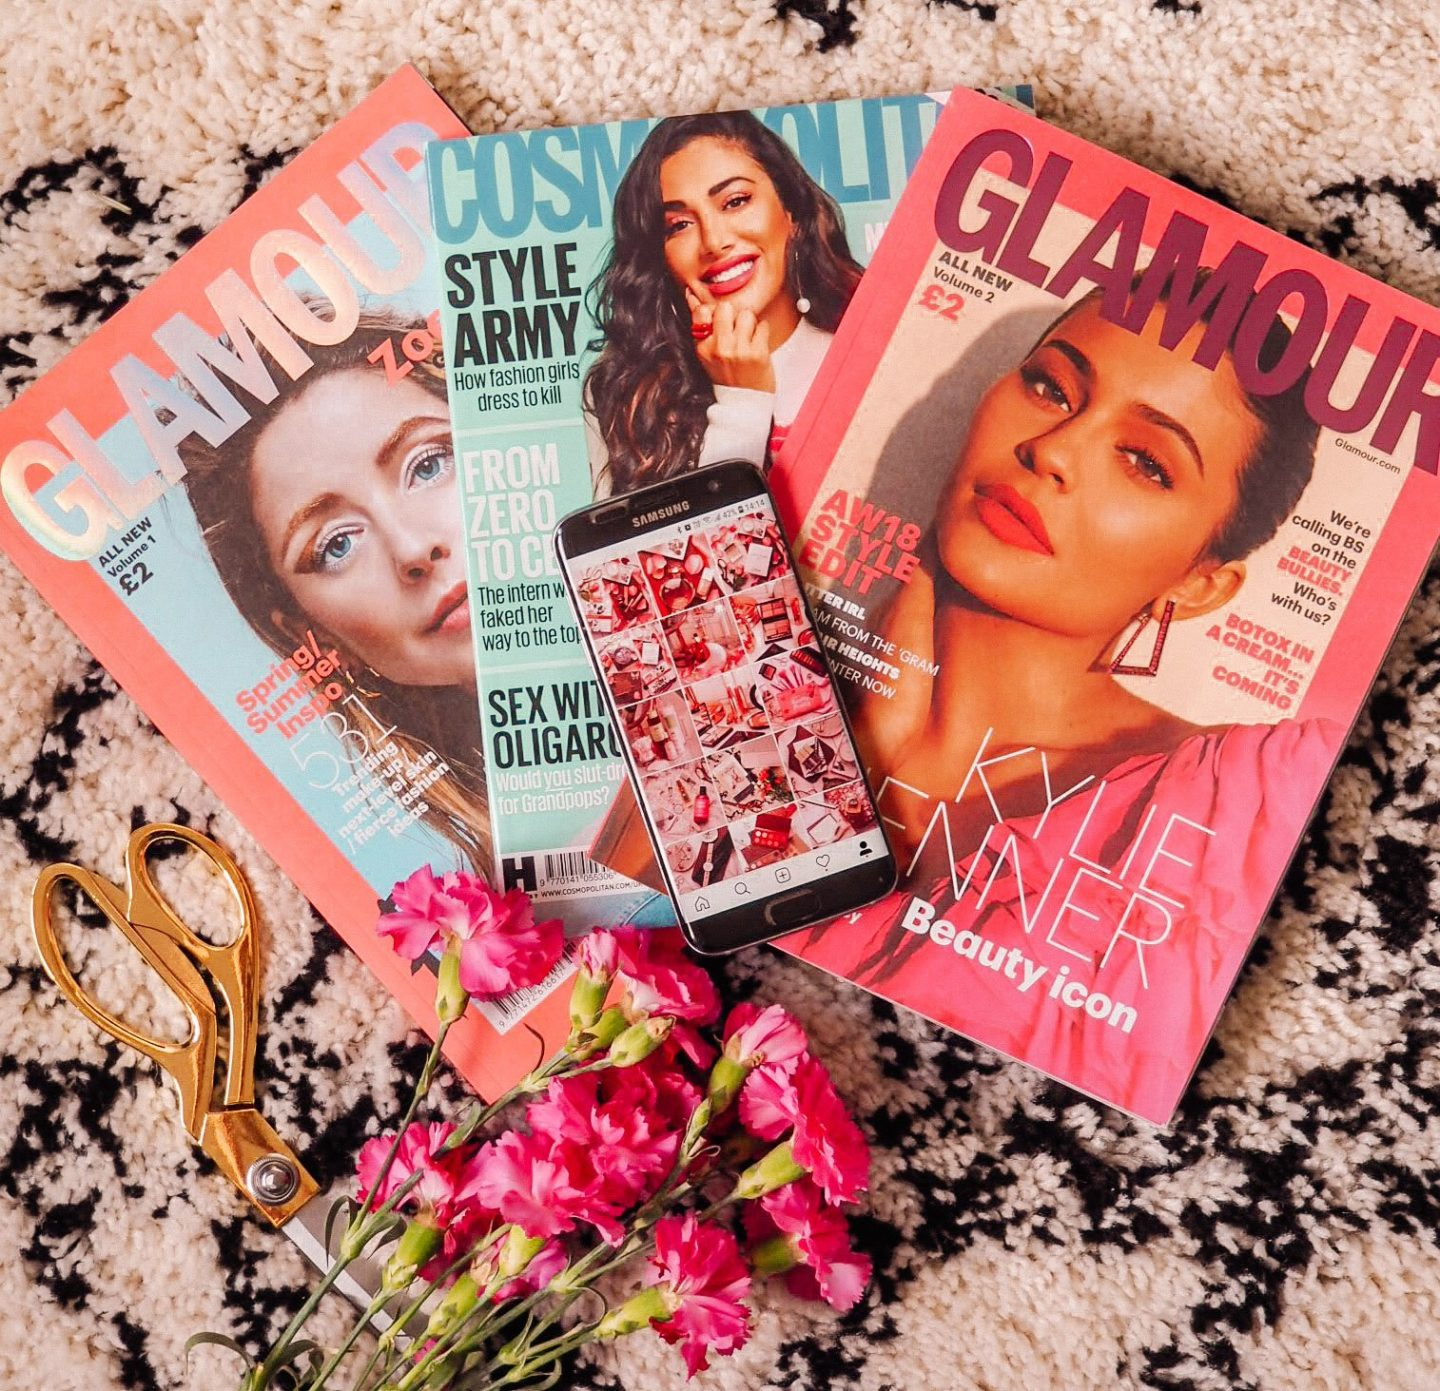 A pile of magazines for the post does the beauty industry promote low self esteem?